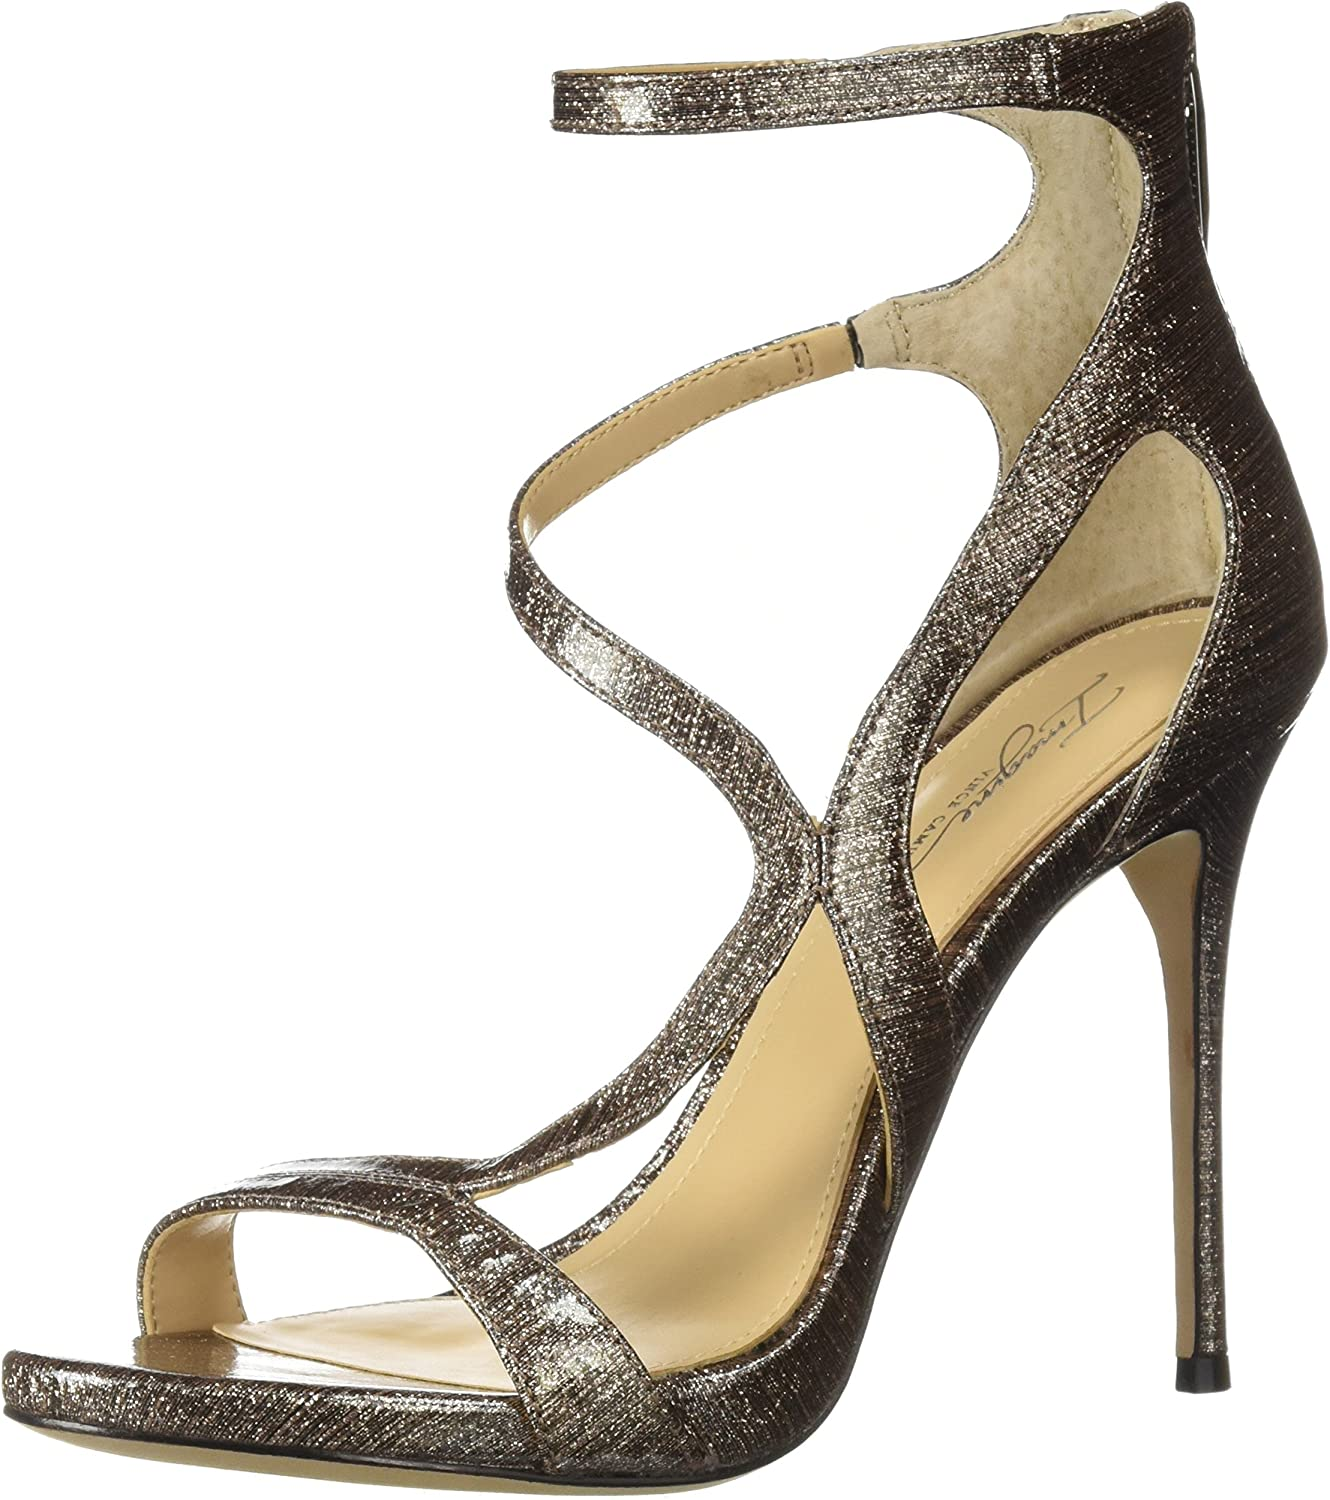 Imagine Vince Camuto Womens Demet Heeled Sandal